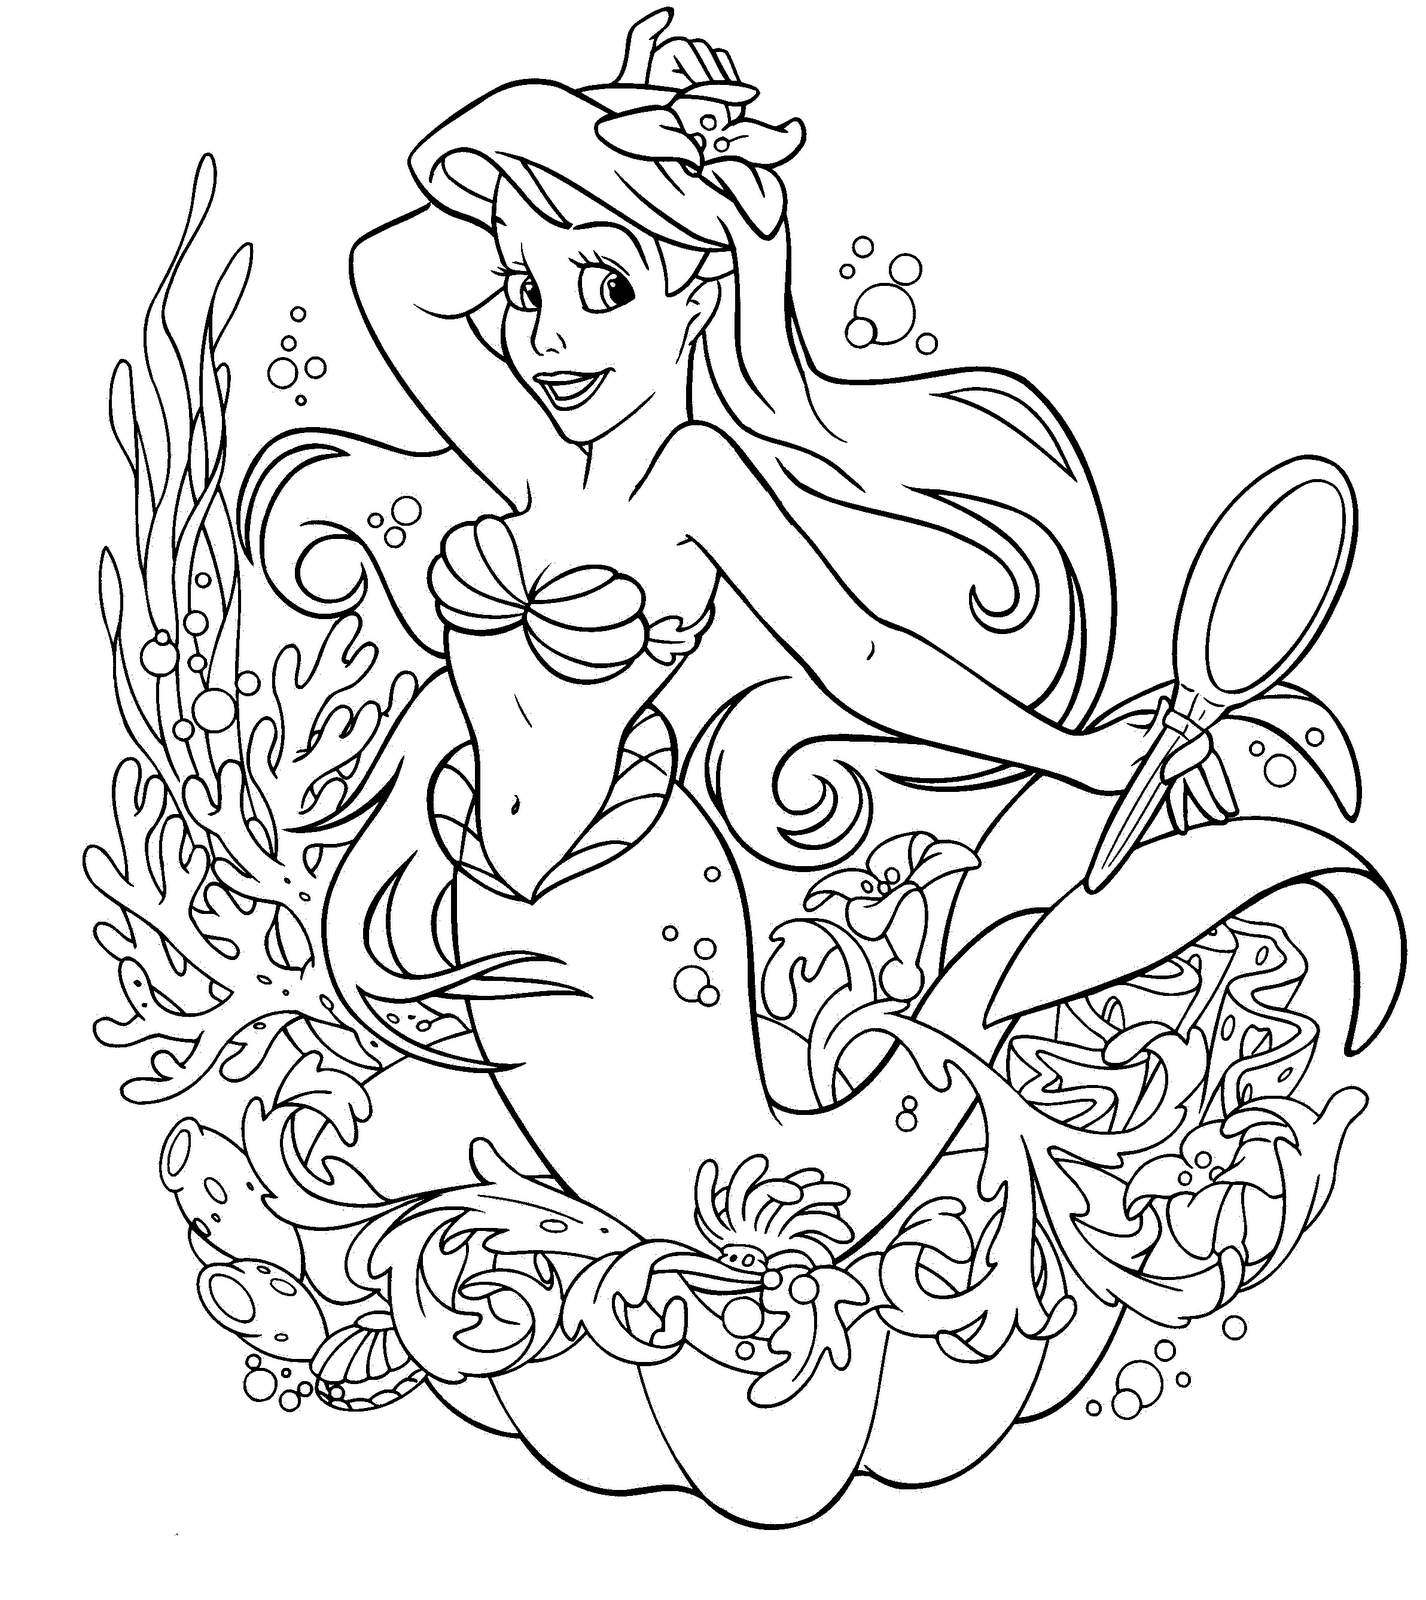 printable little mermaid coloring pages ariel the little mermaid coloring pages for girls to print coloring little mermaid pages printable